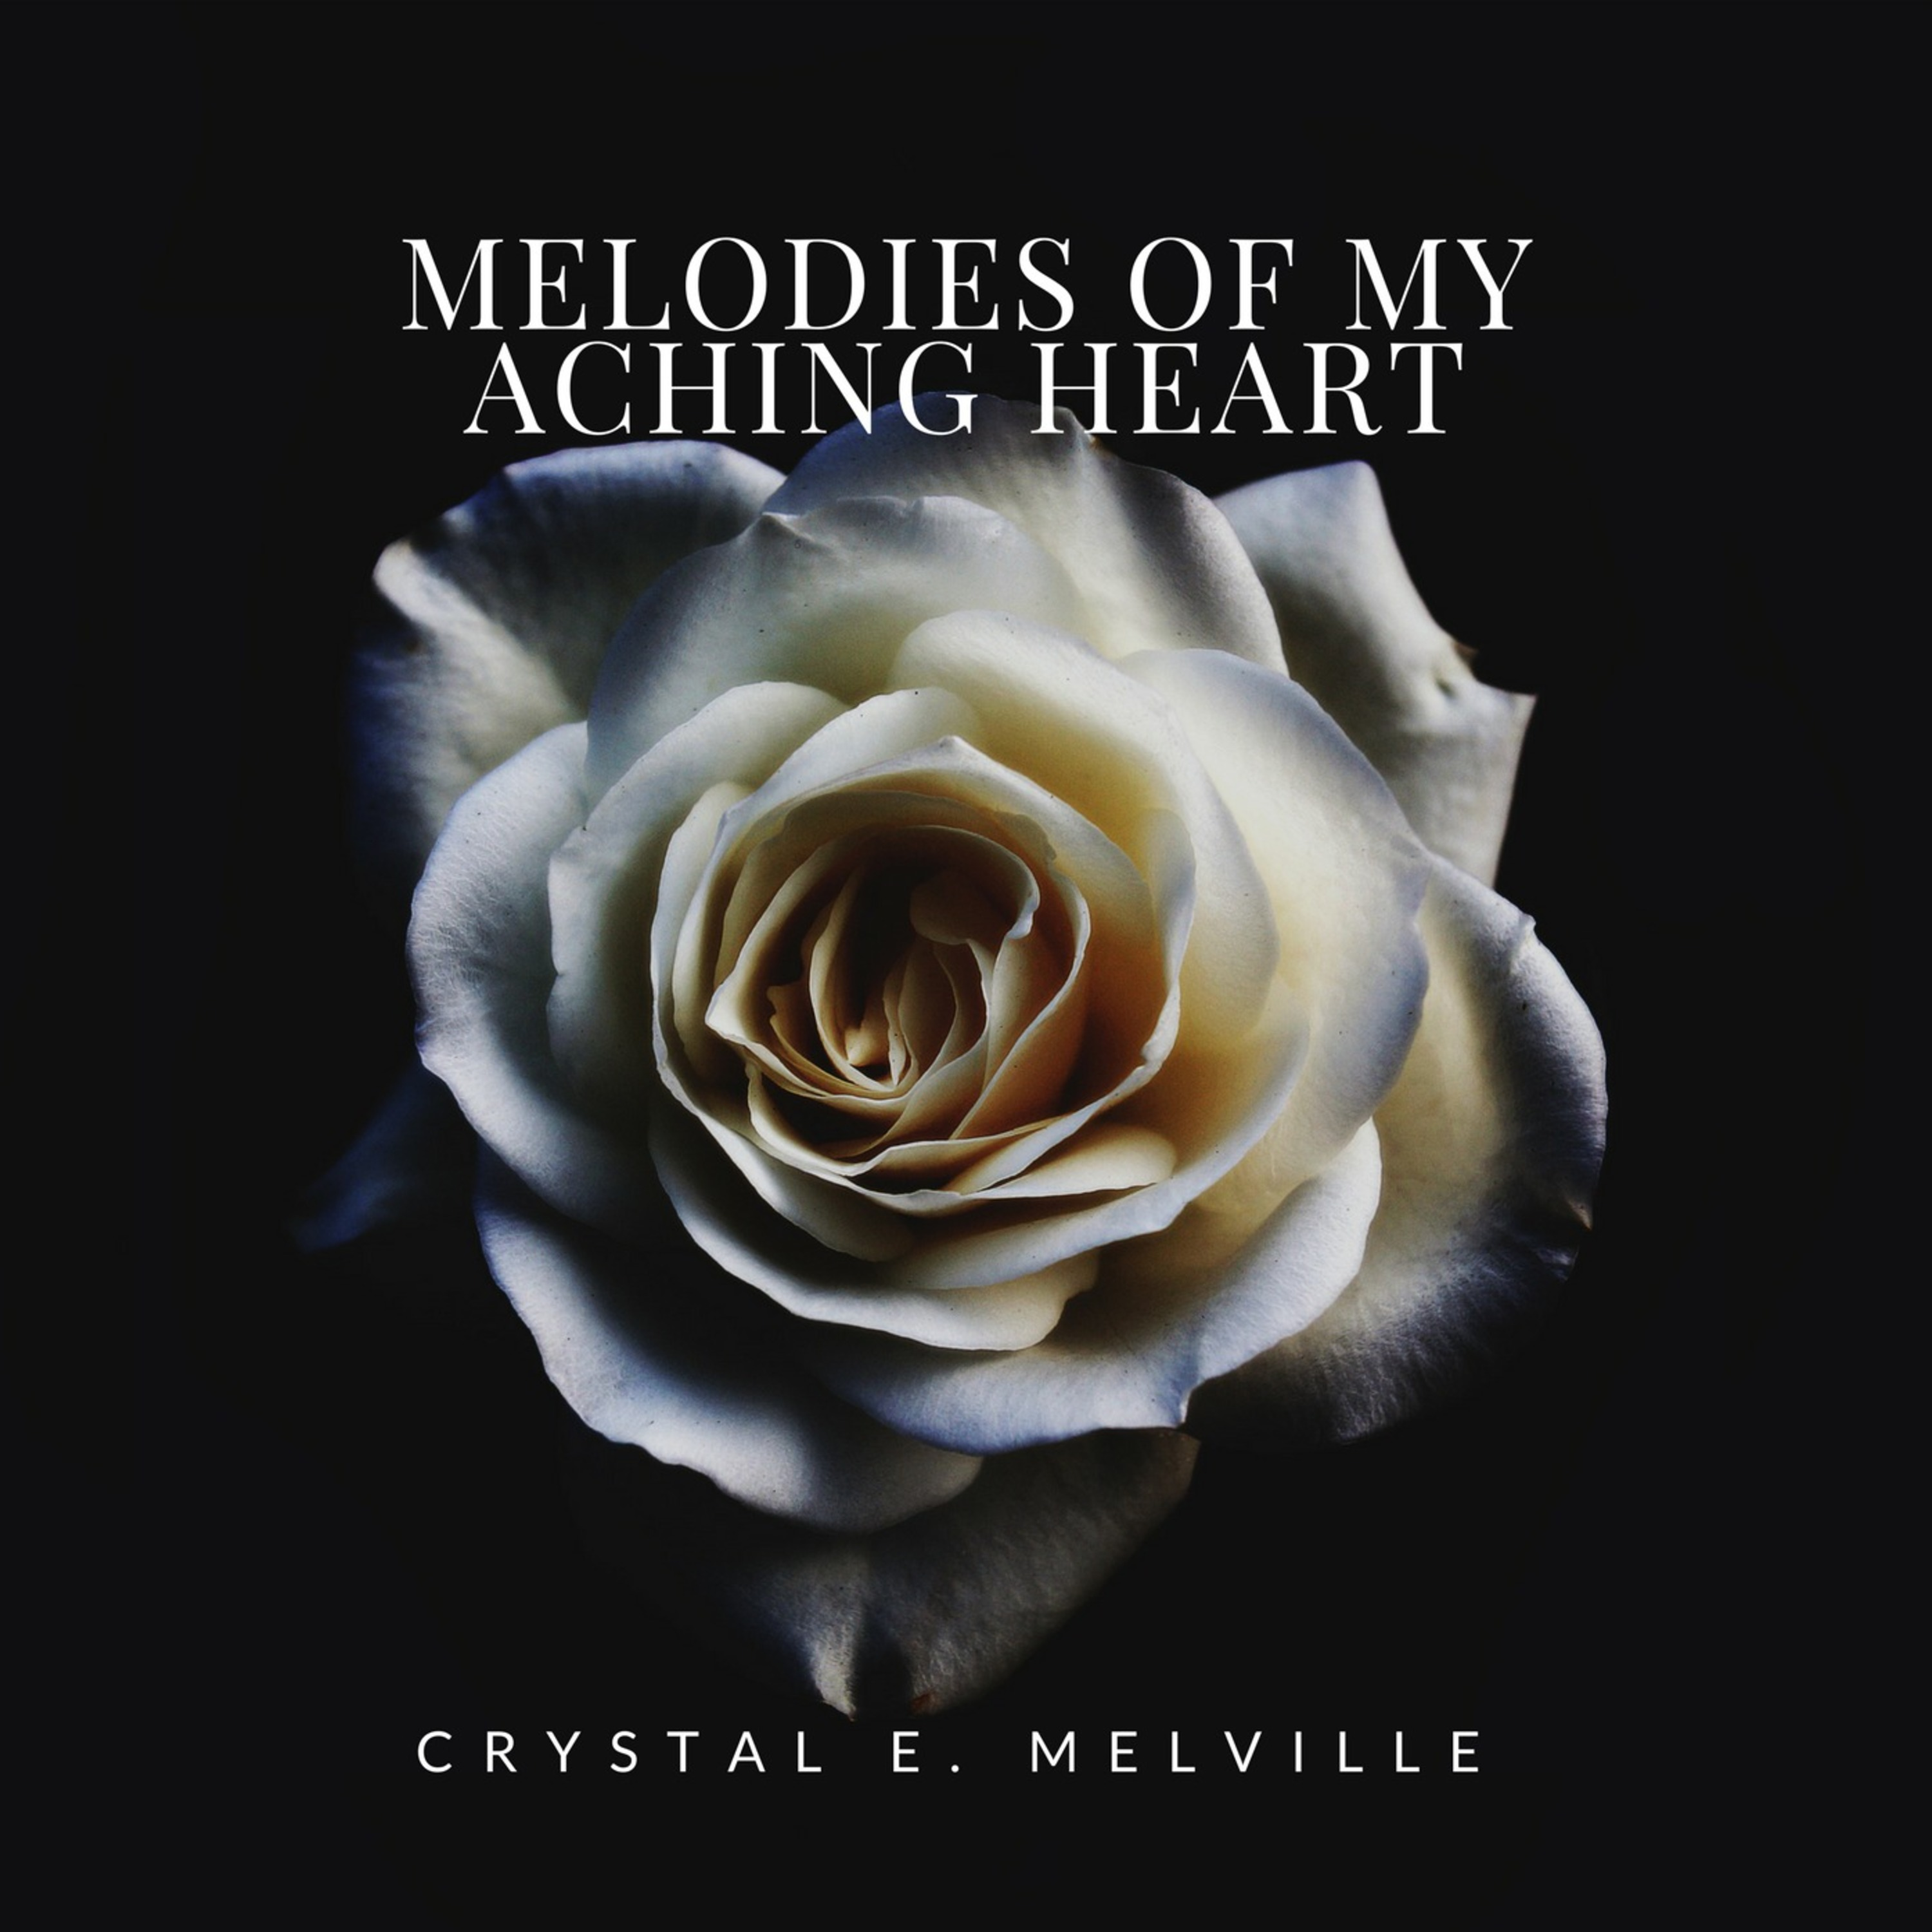 Melodies of My Aching Heart: The First Wife